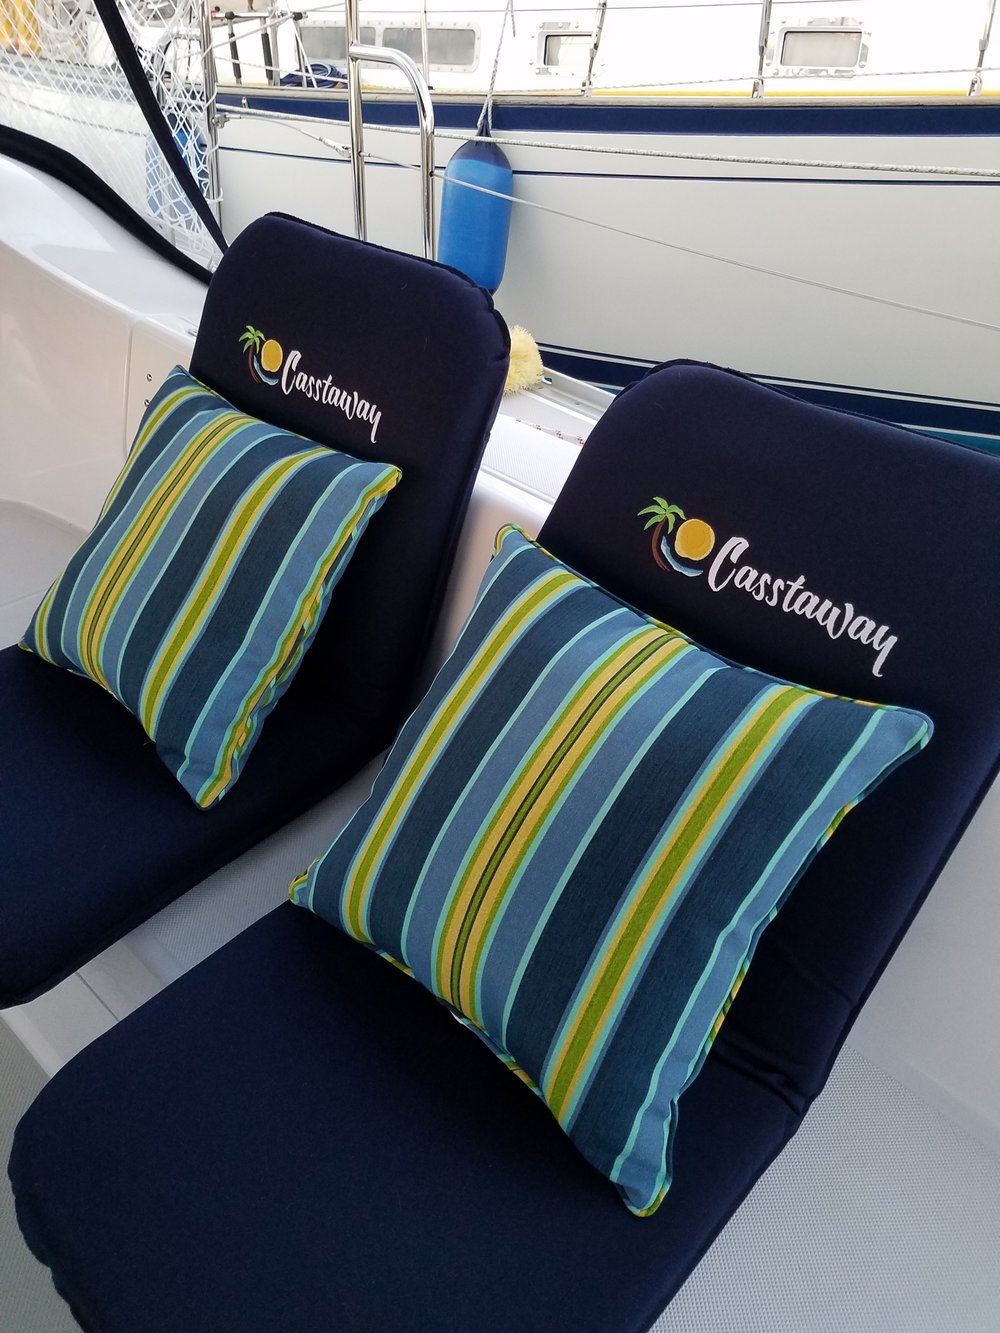 We love our new Sport-a-Seats! They are so comfortable, sturdy and well-made, and they look awesome. The logo embroidery is really sharp and gives them an extra punch. We have had so many compliments from our dock mates.   Todd and Tanya C.